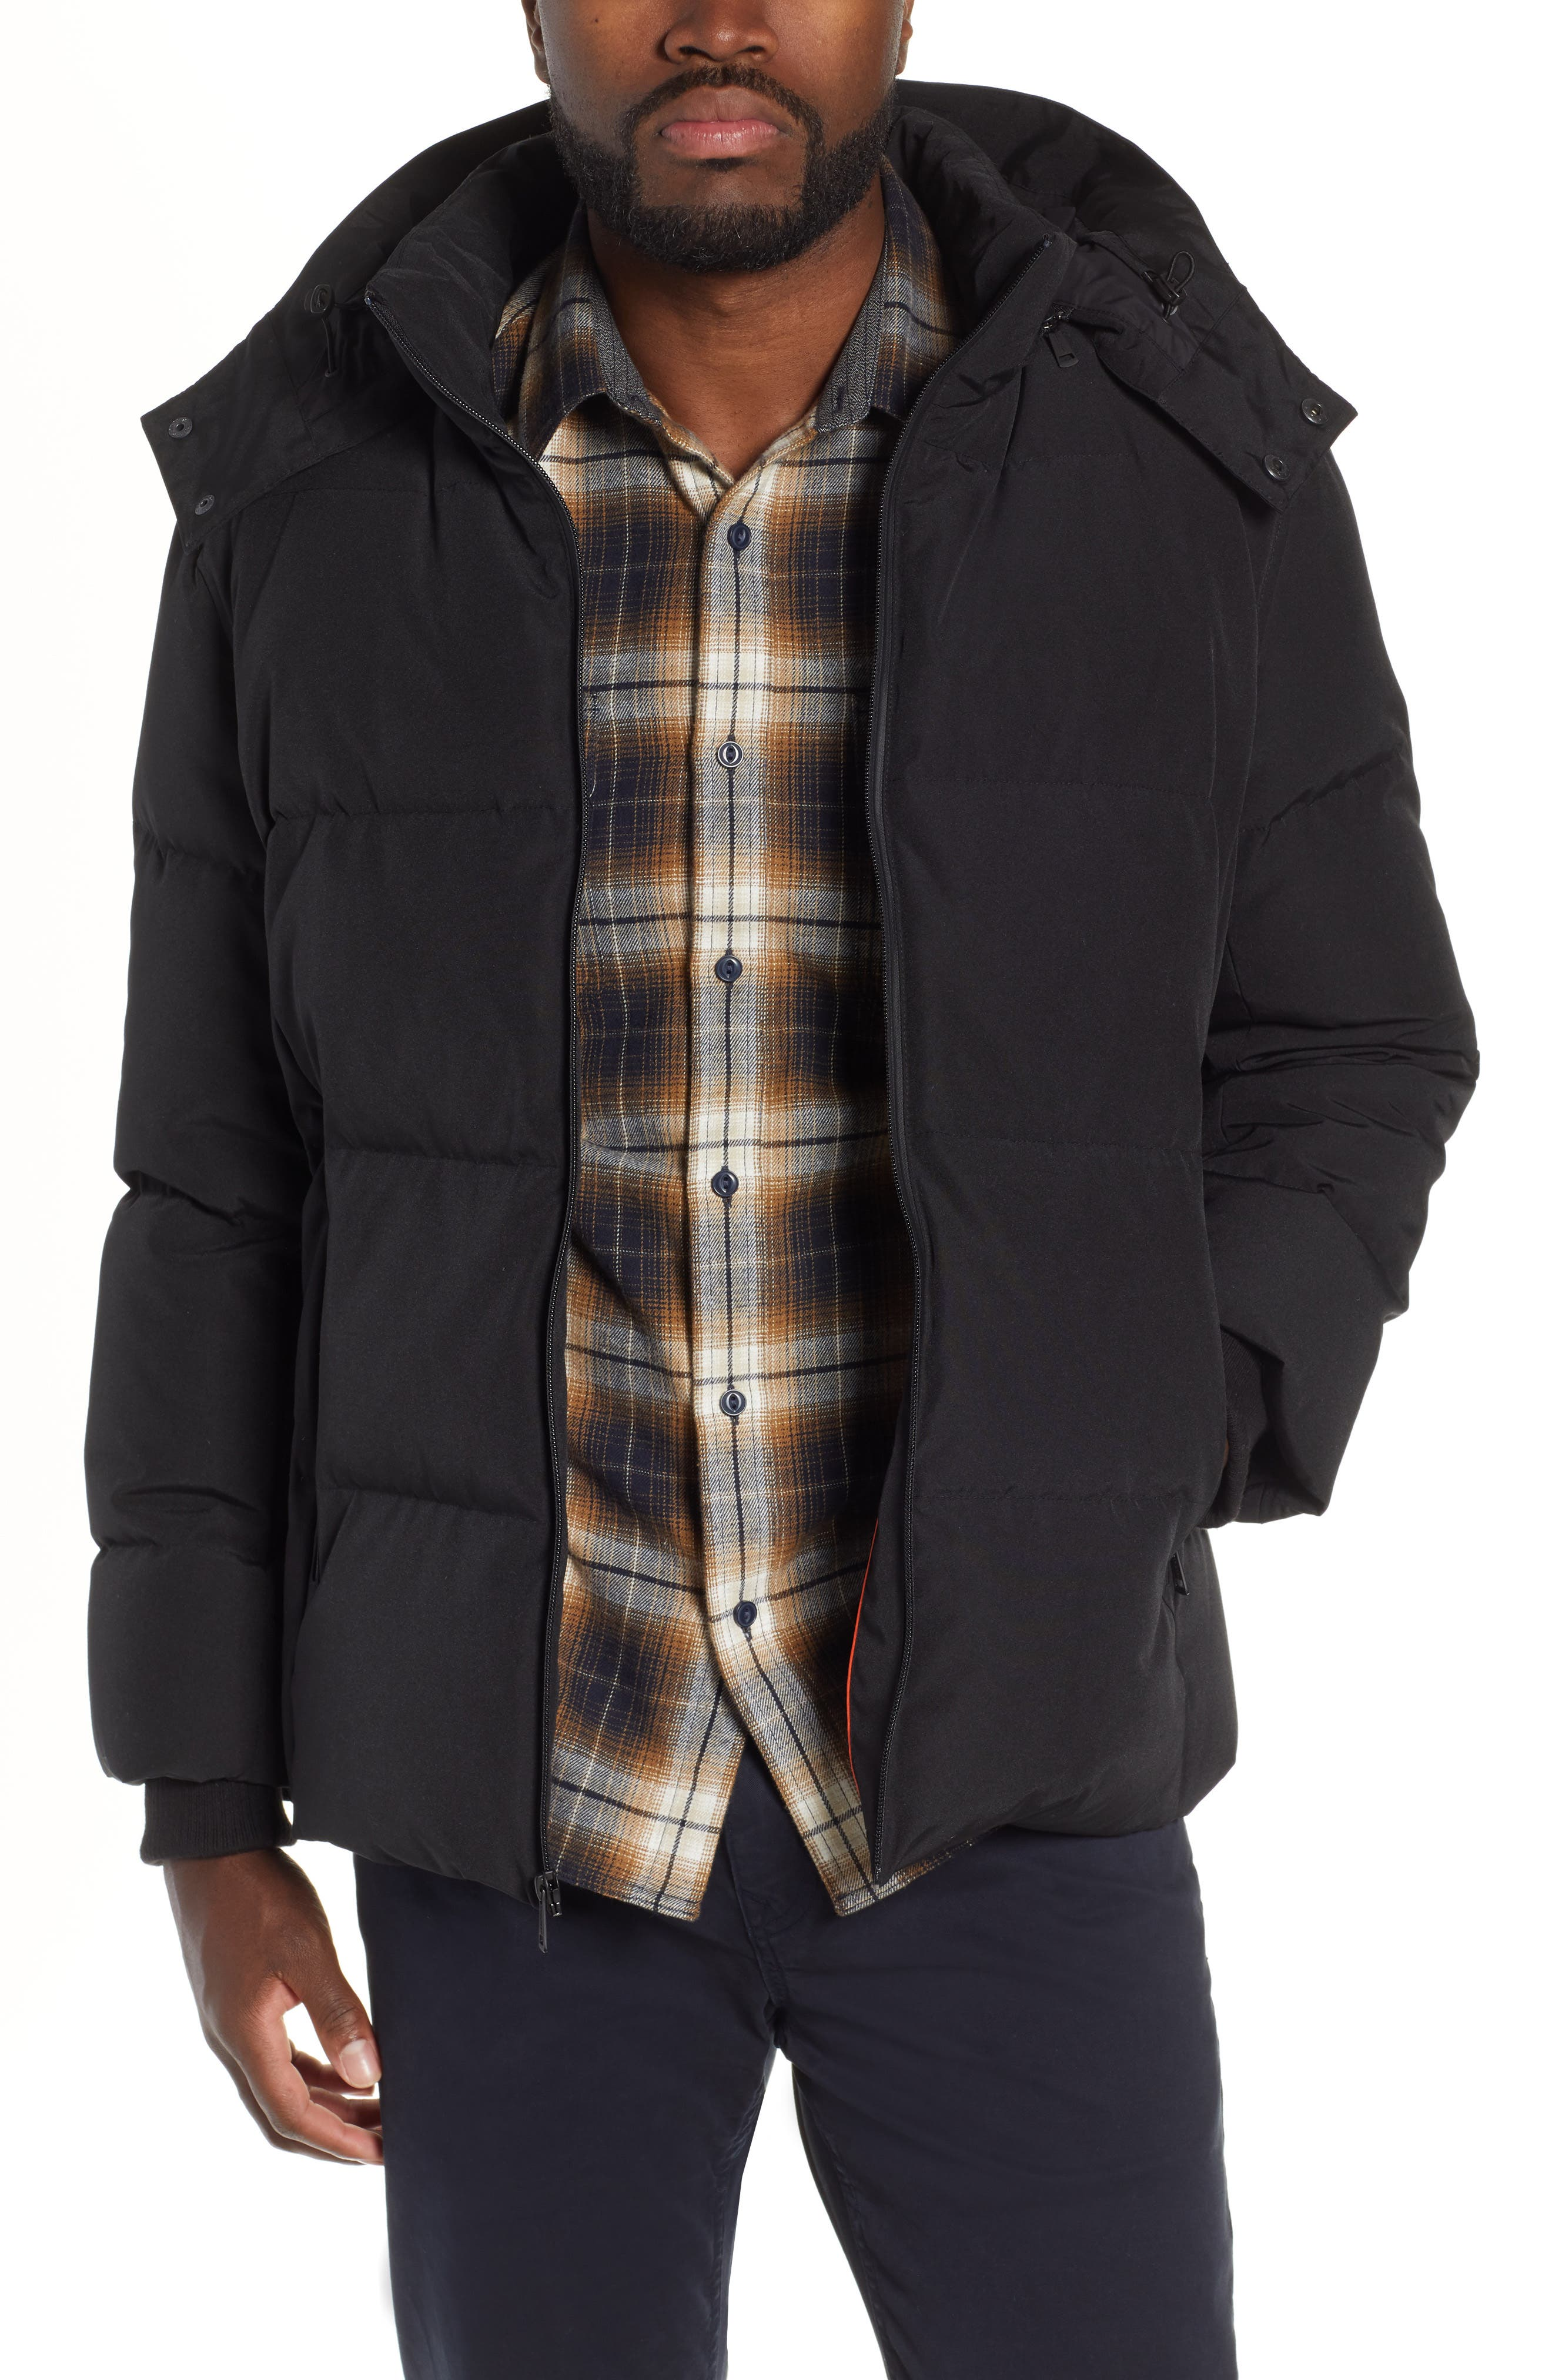 COLE HAAN SIGNATURE, Hooded Puffer Jacket, Main thumbnail 1, color, 001